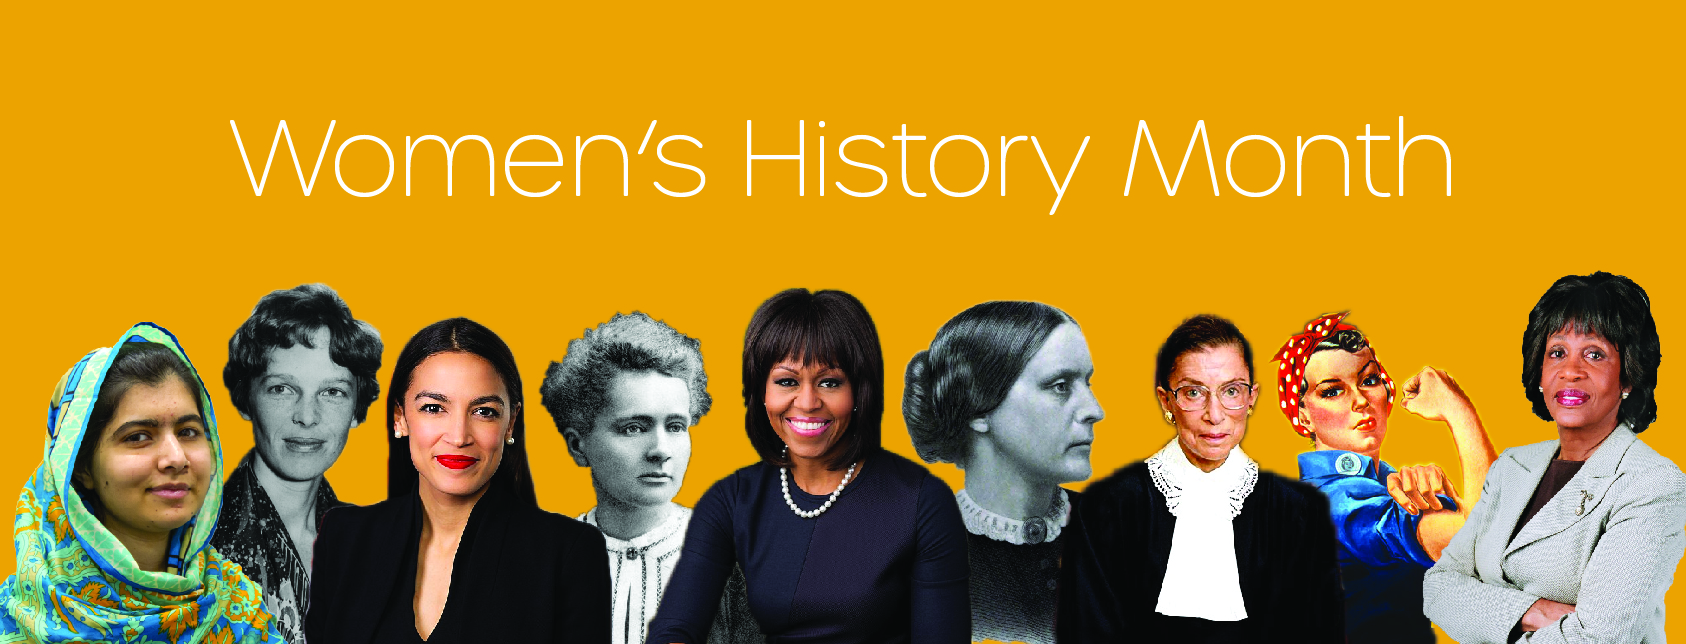 Womens History Month : The University of Akron